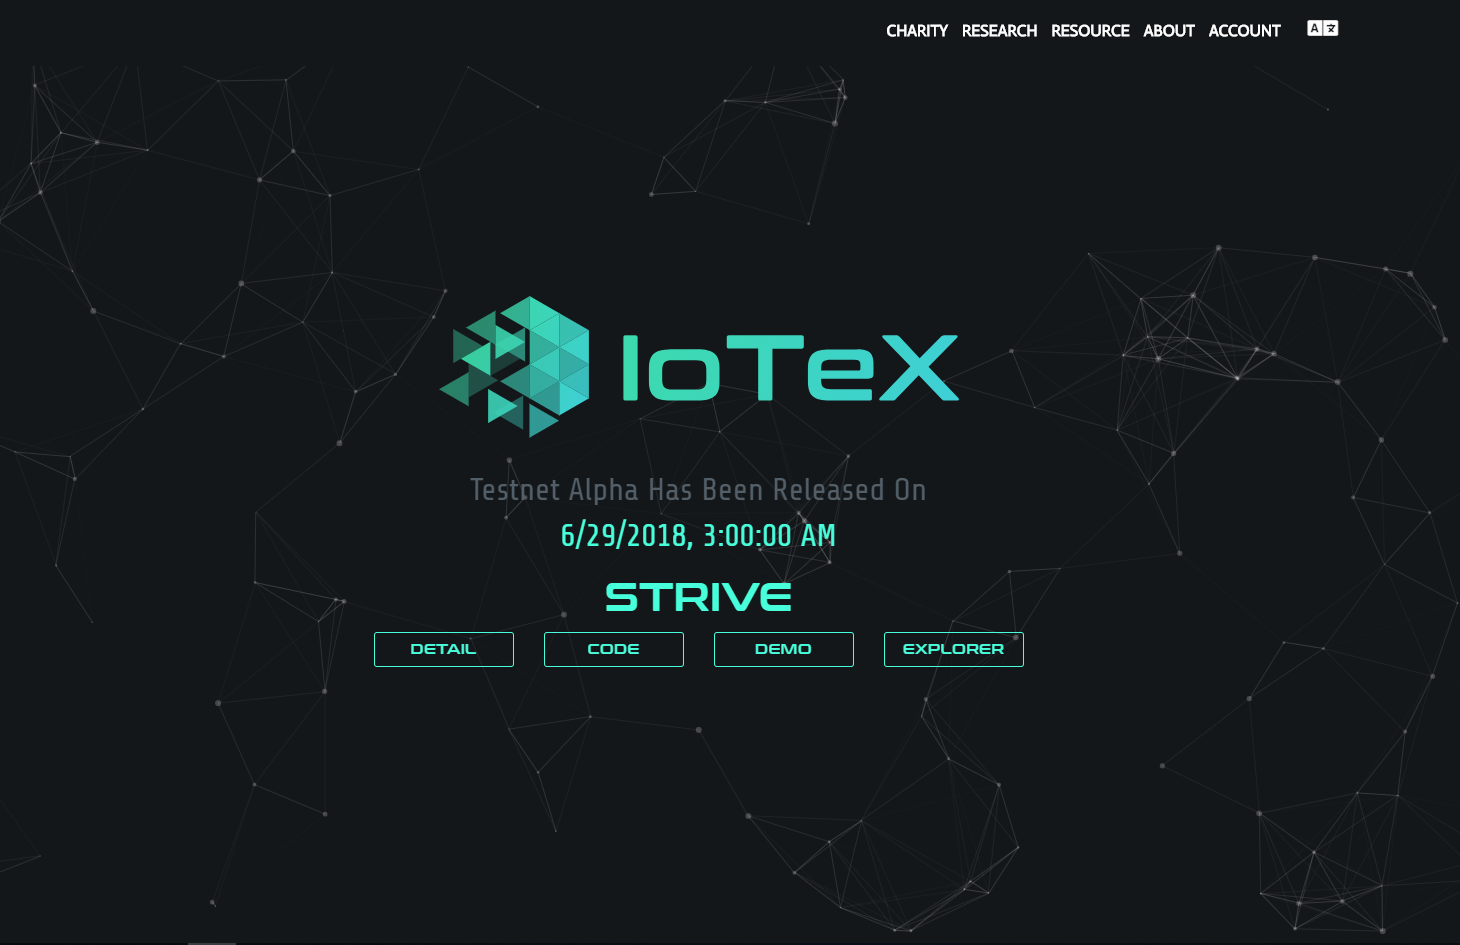 IoTex Website